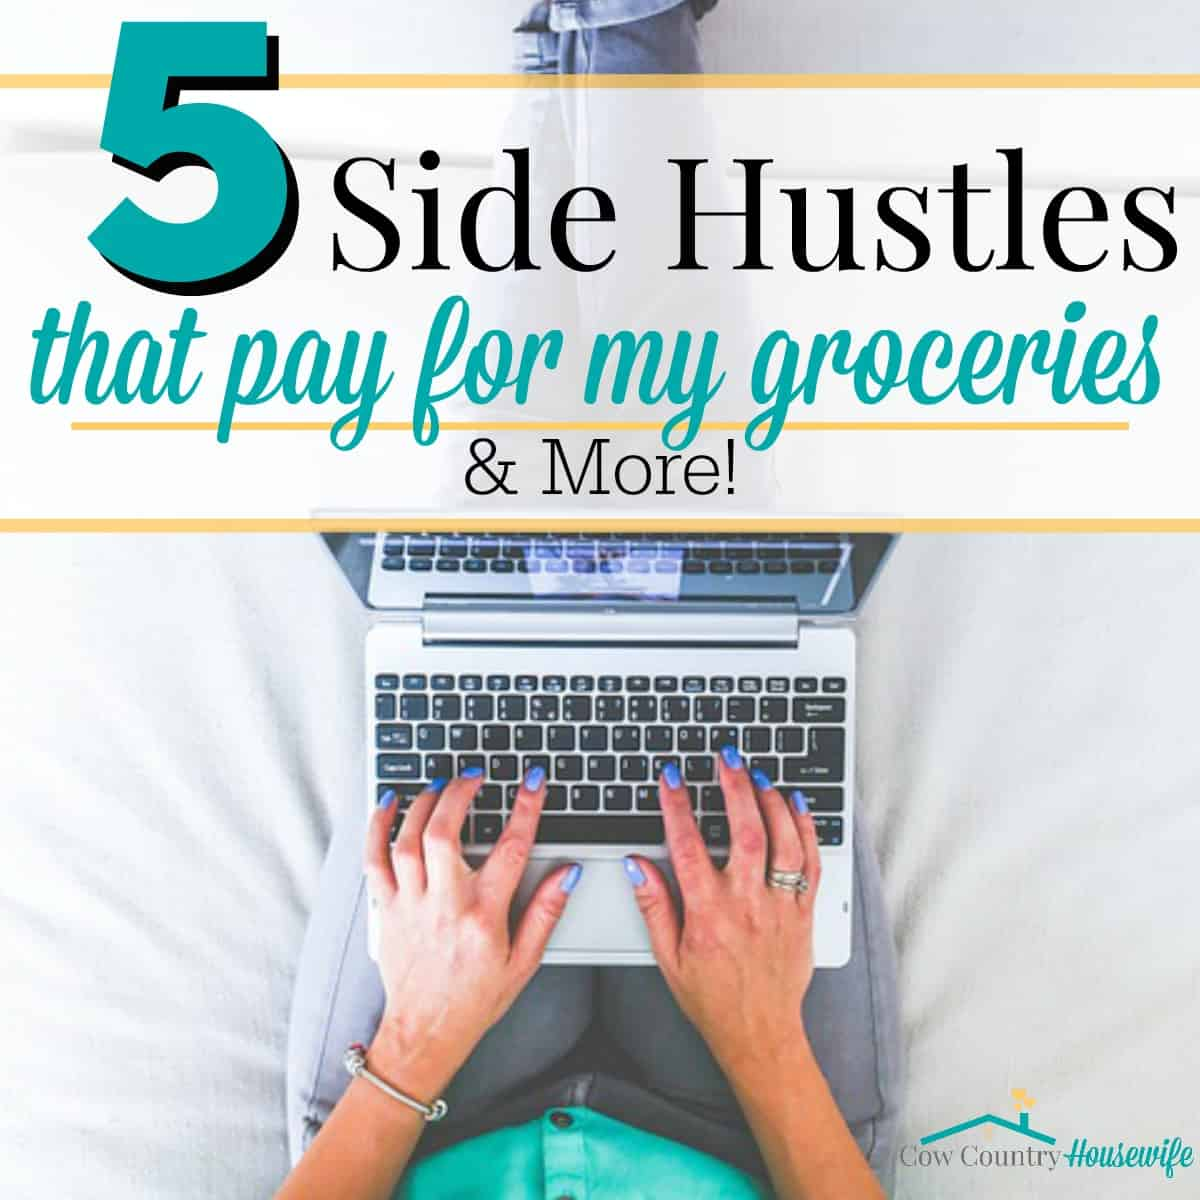 5 Side Hustles That Pay For My Groceries (and More!)